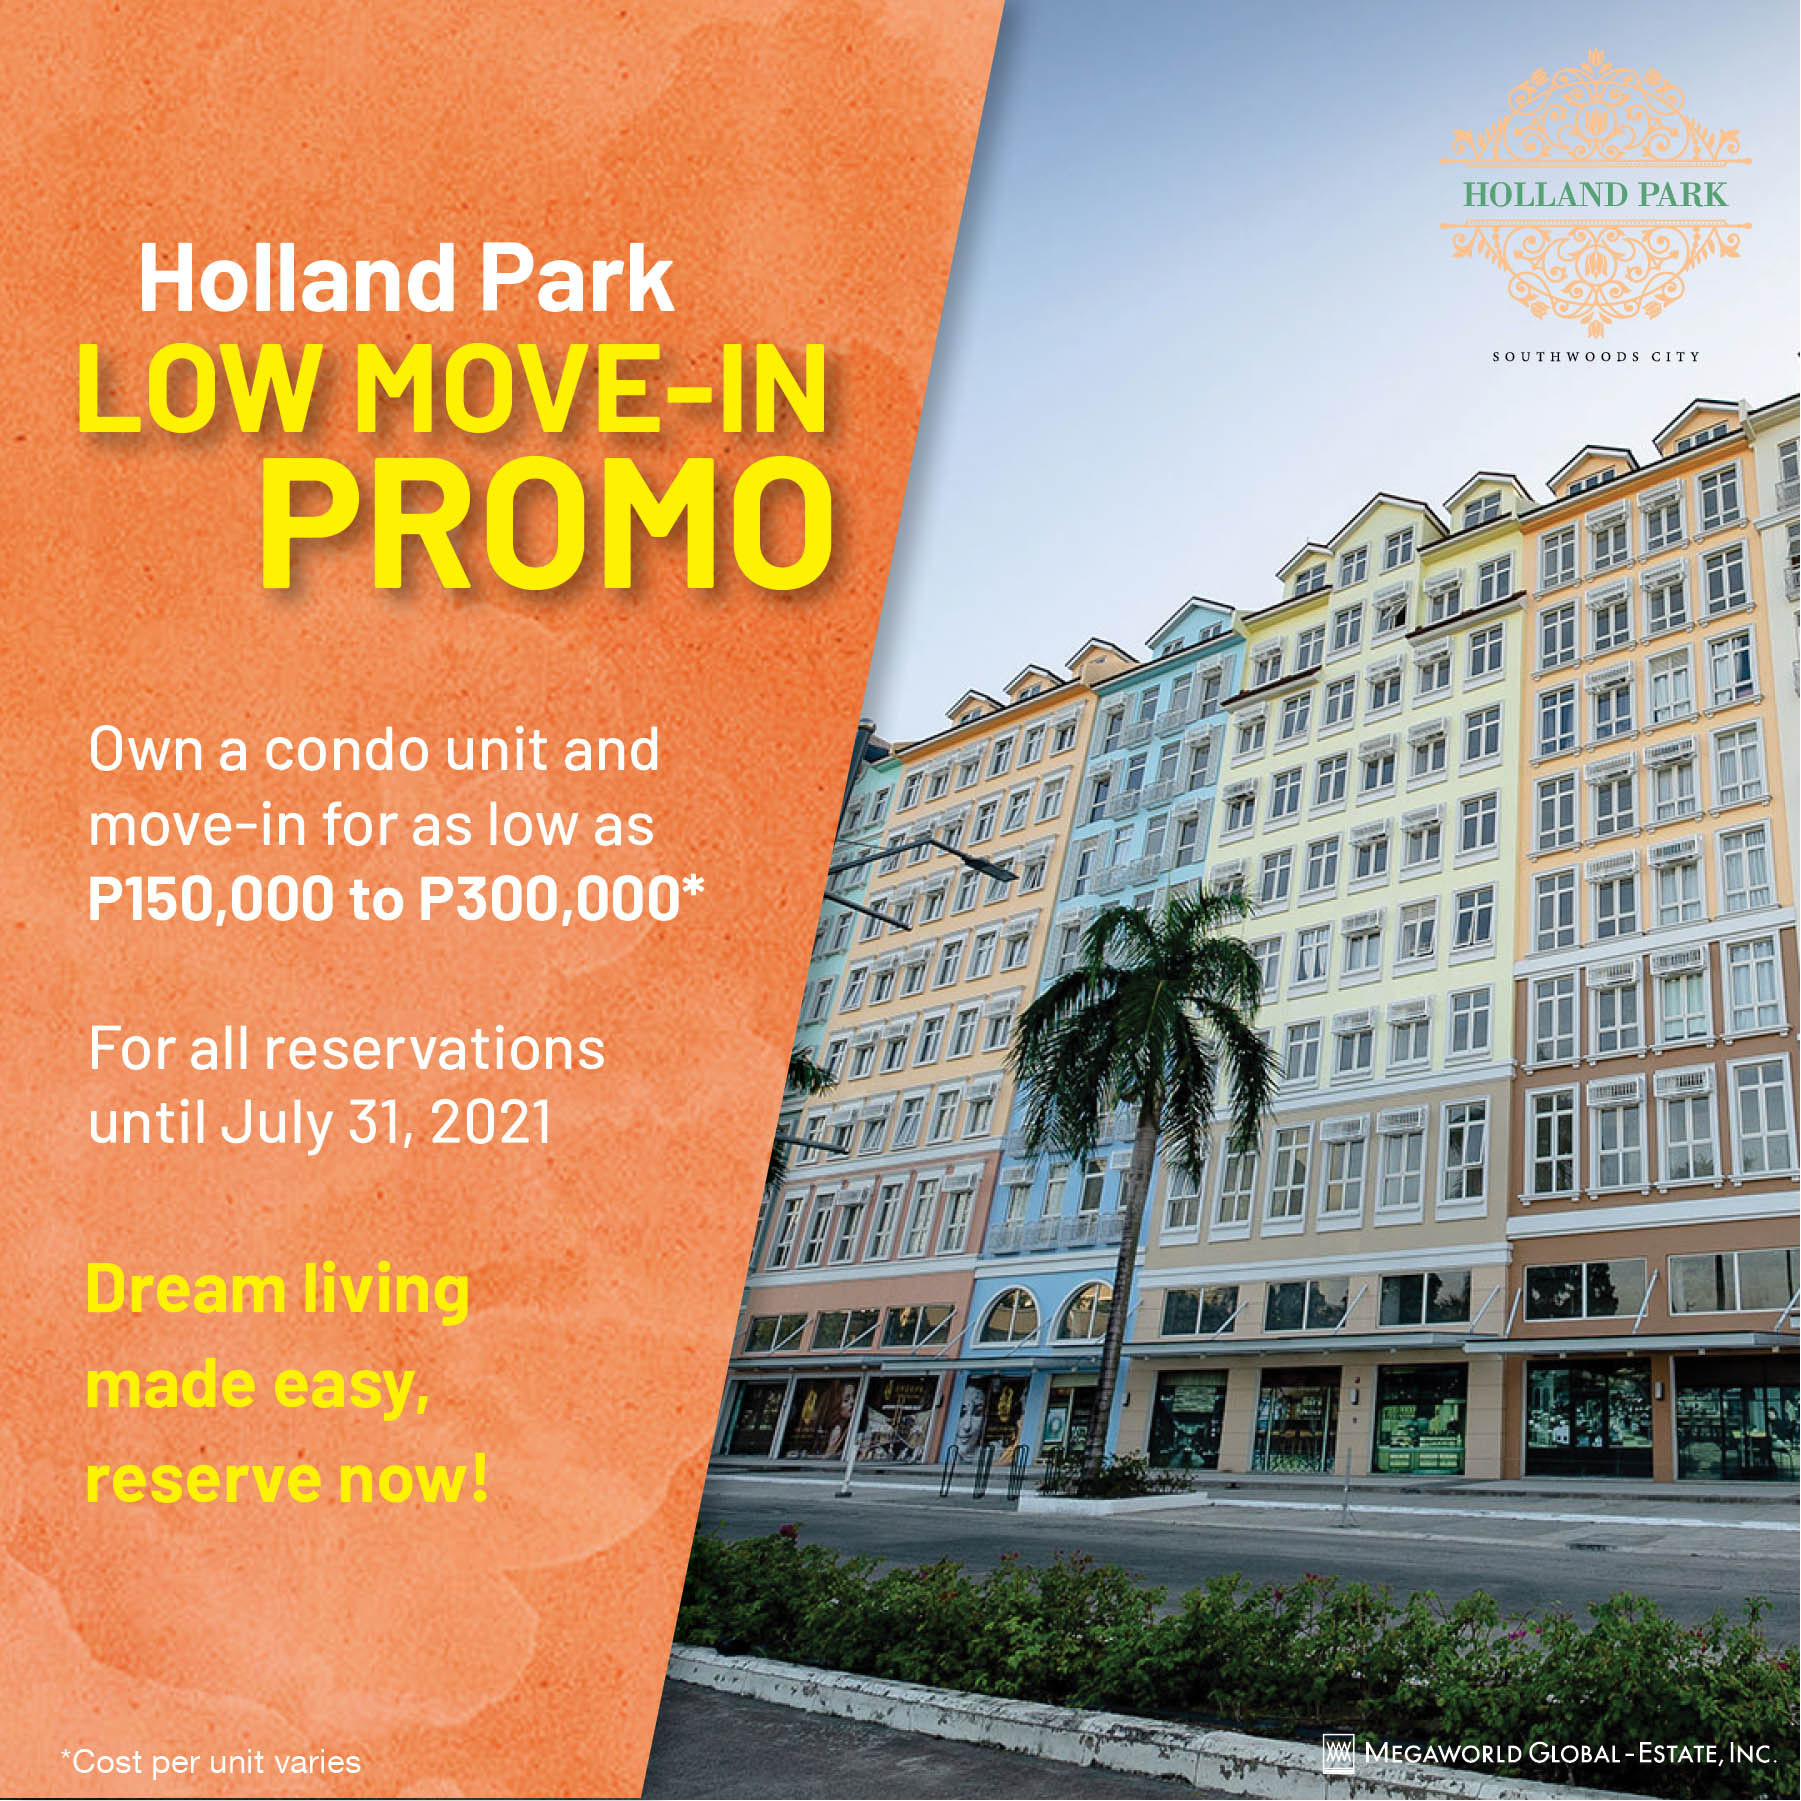 holland park low move in promo